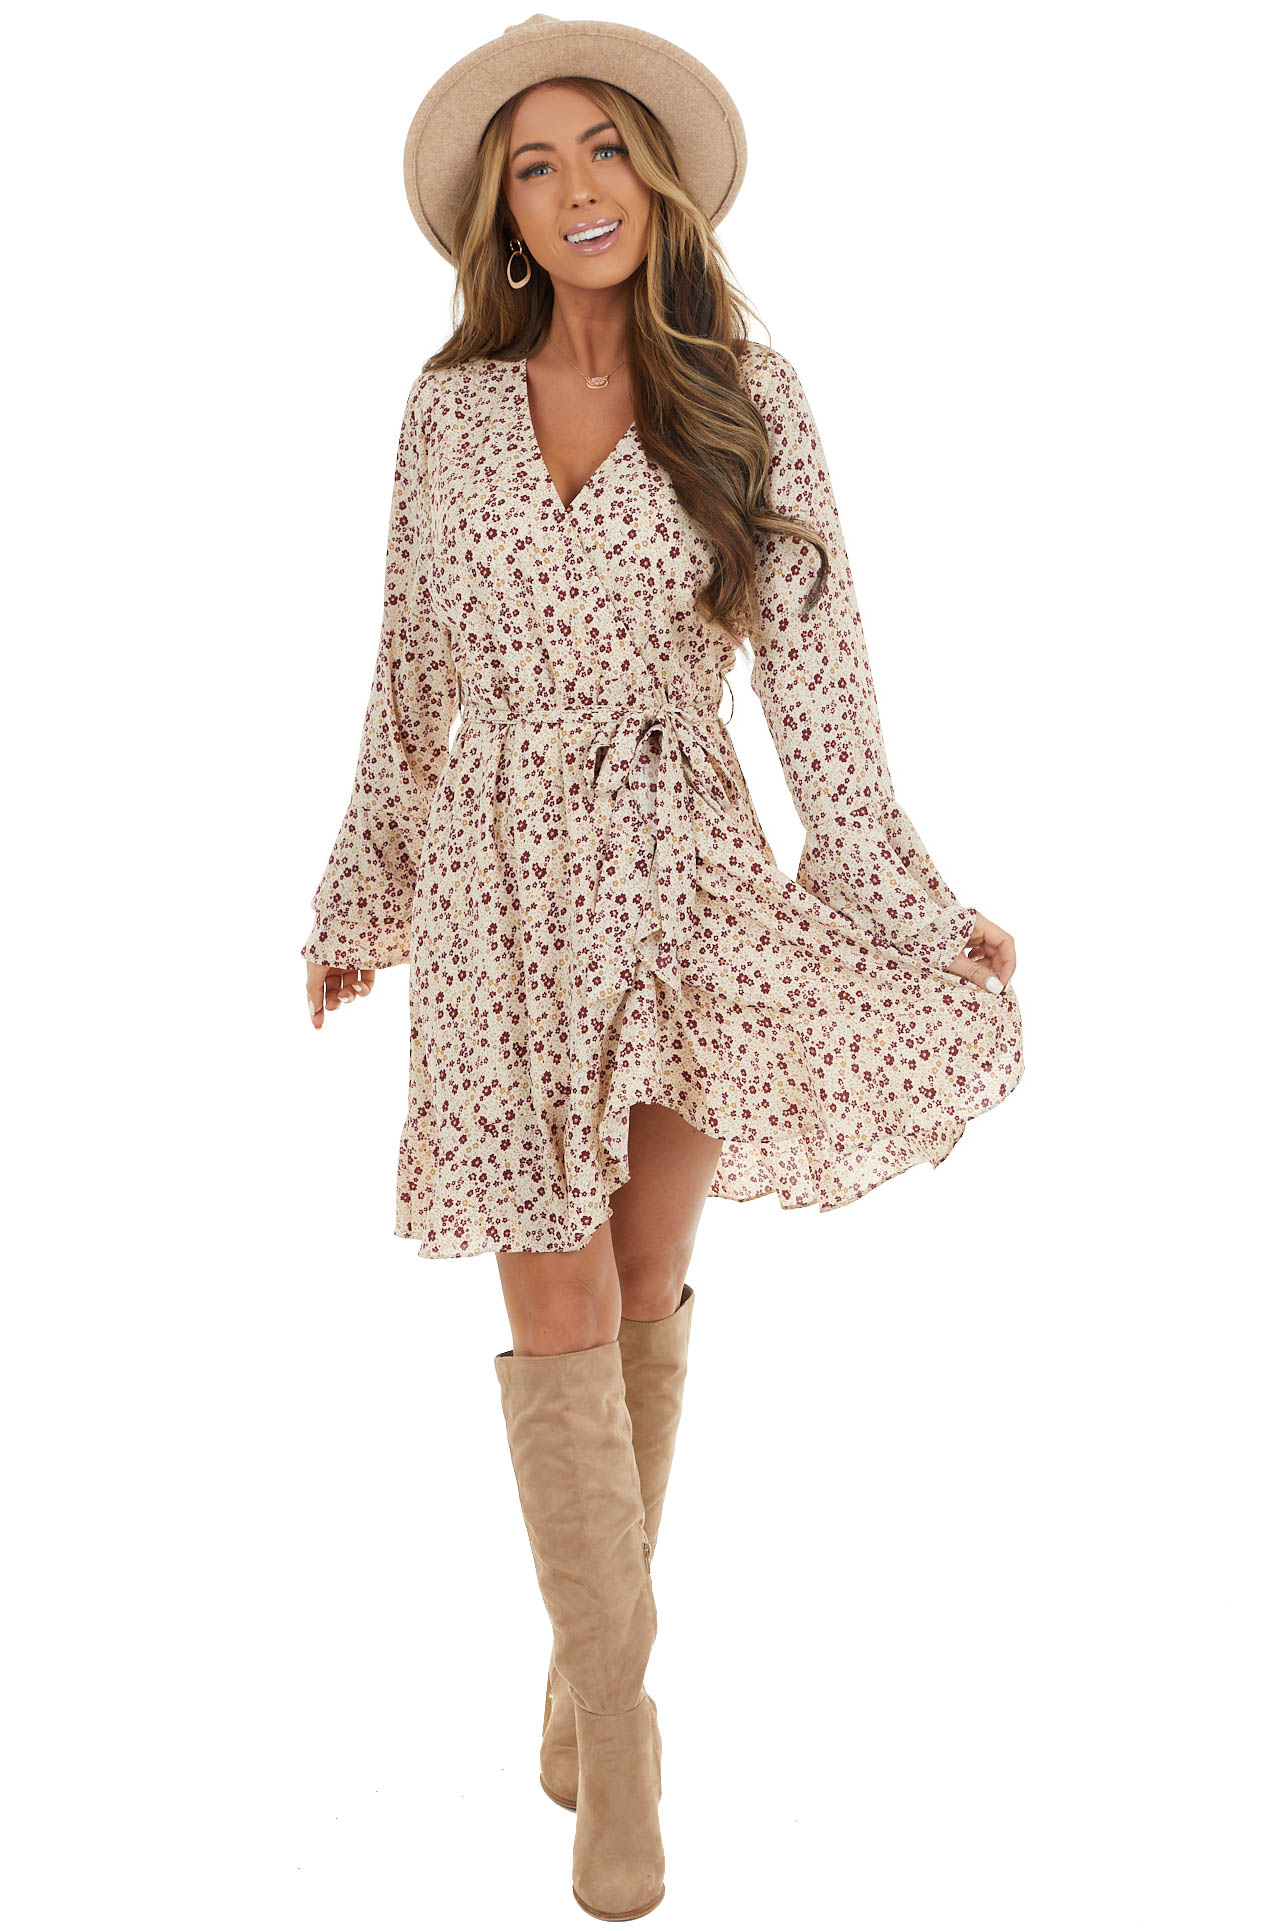 Cream Floral Print Surplice Dress with Long Bell Sleeves